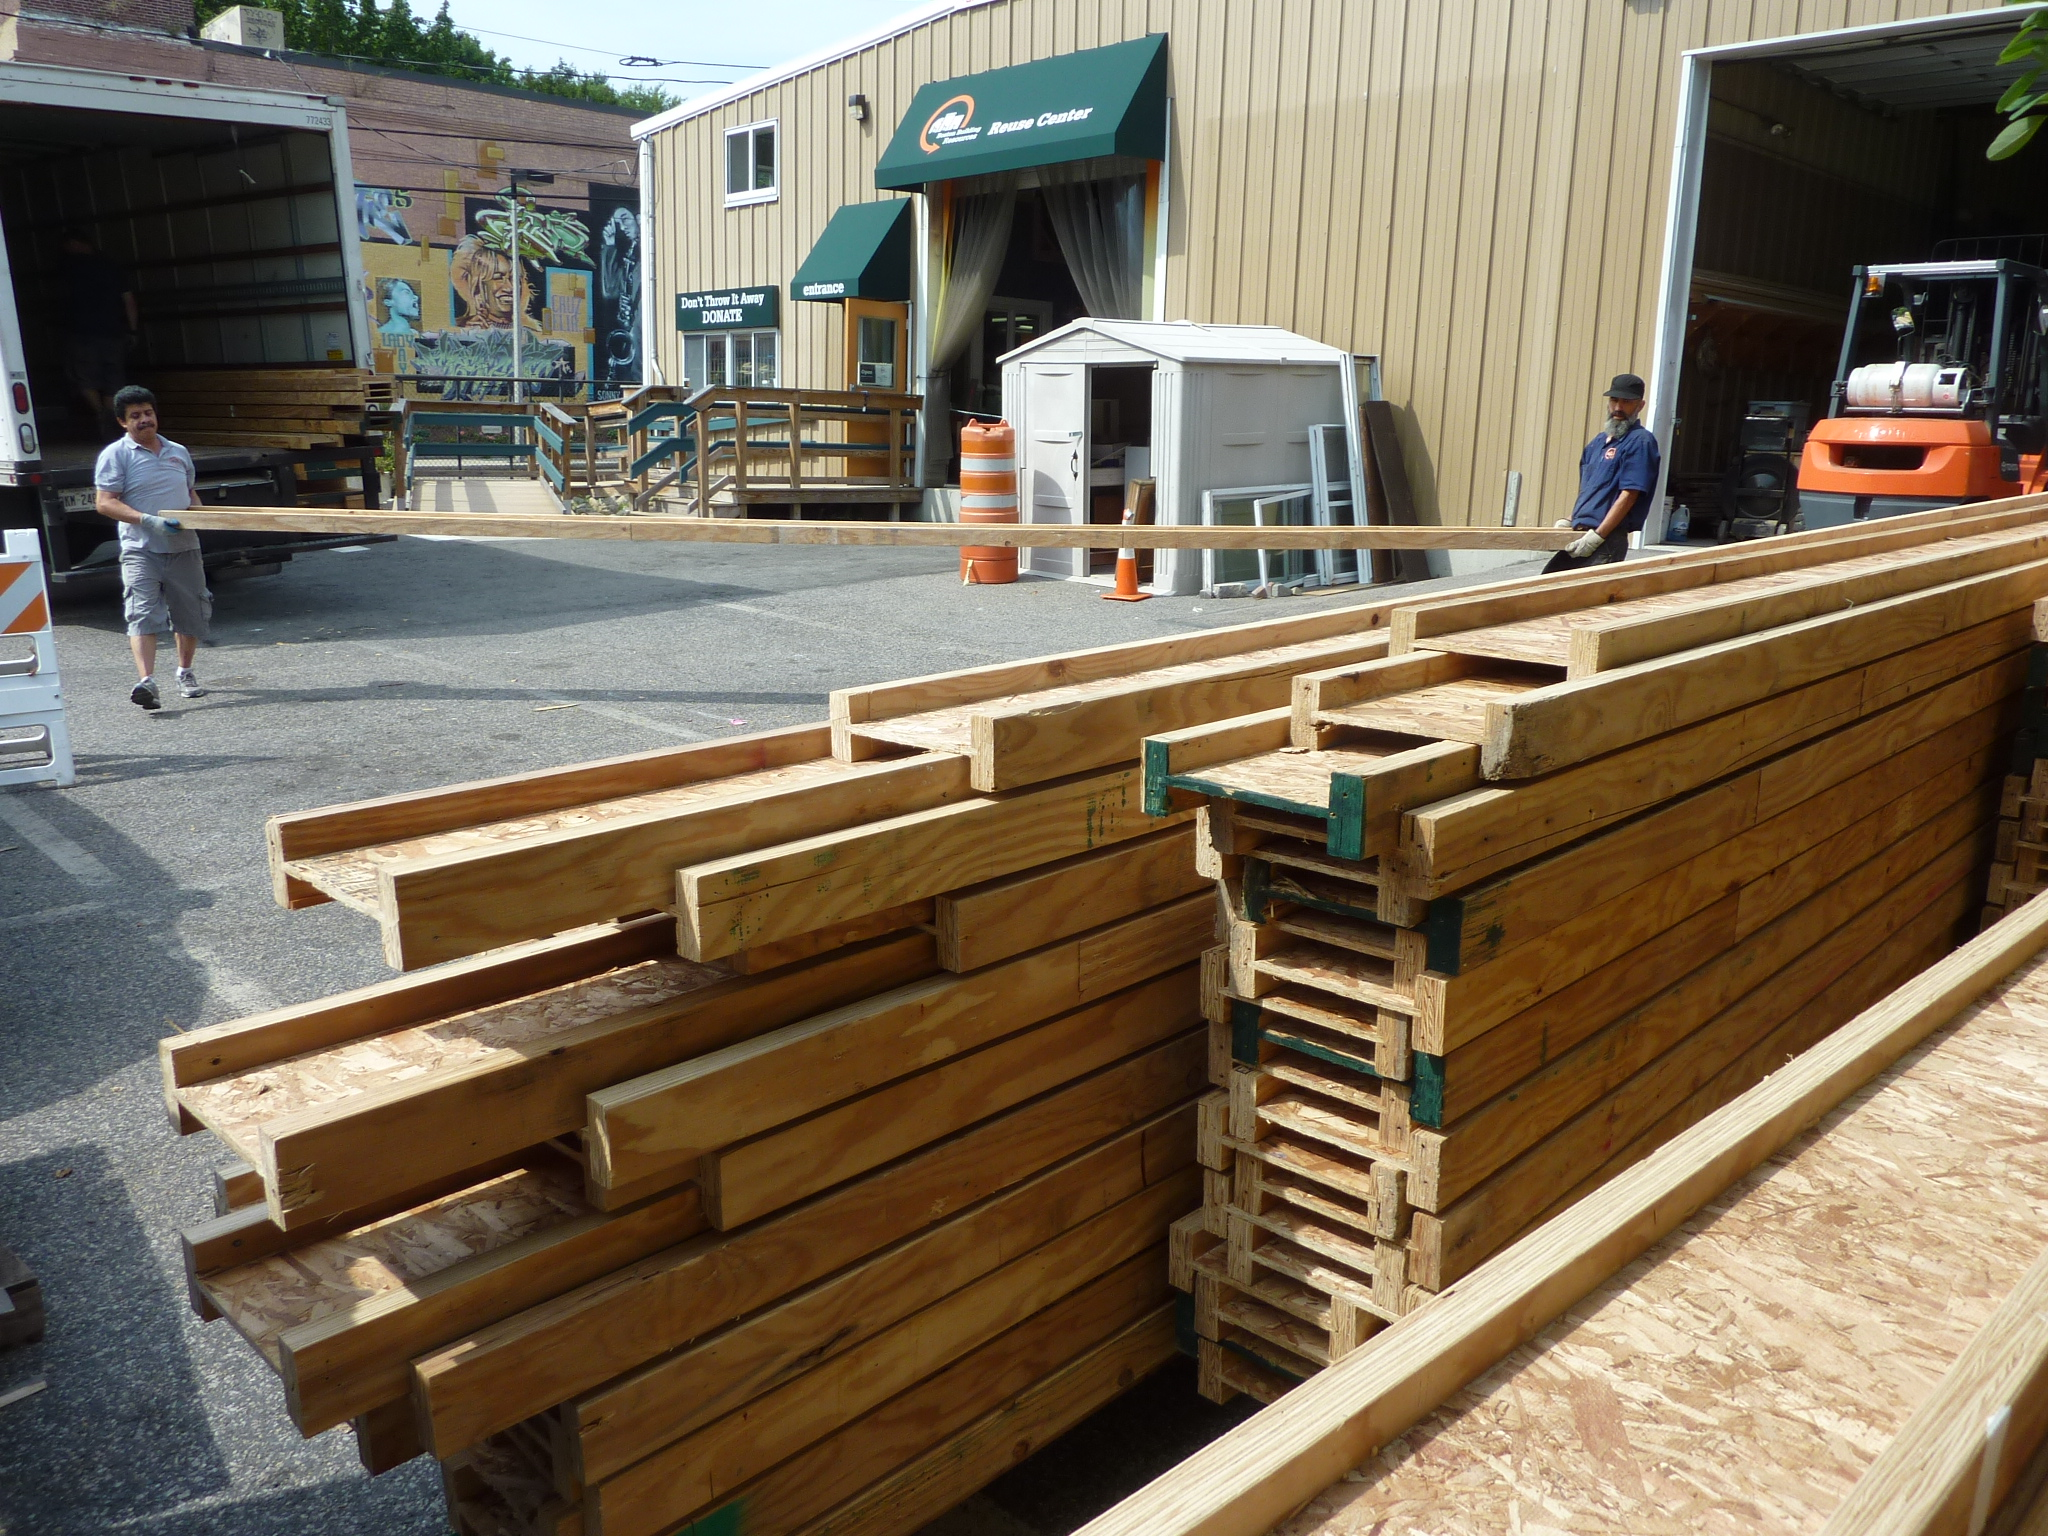 Materials from a dismantled movie set were donated to the Reuse Center at BBR.